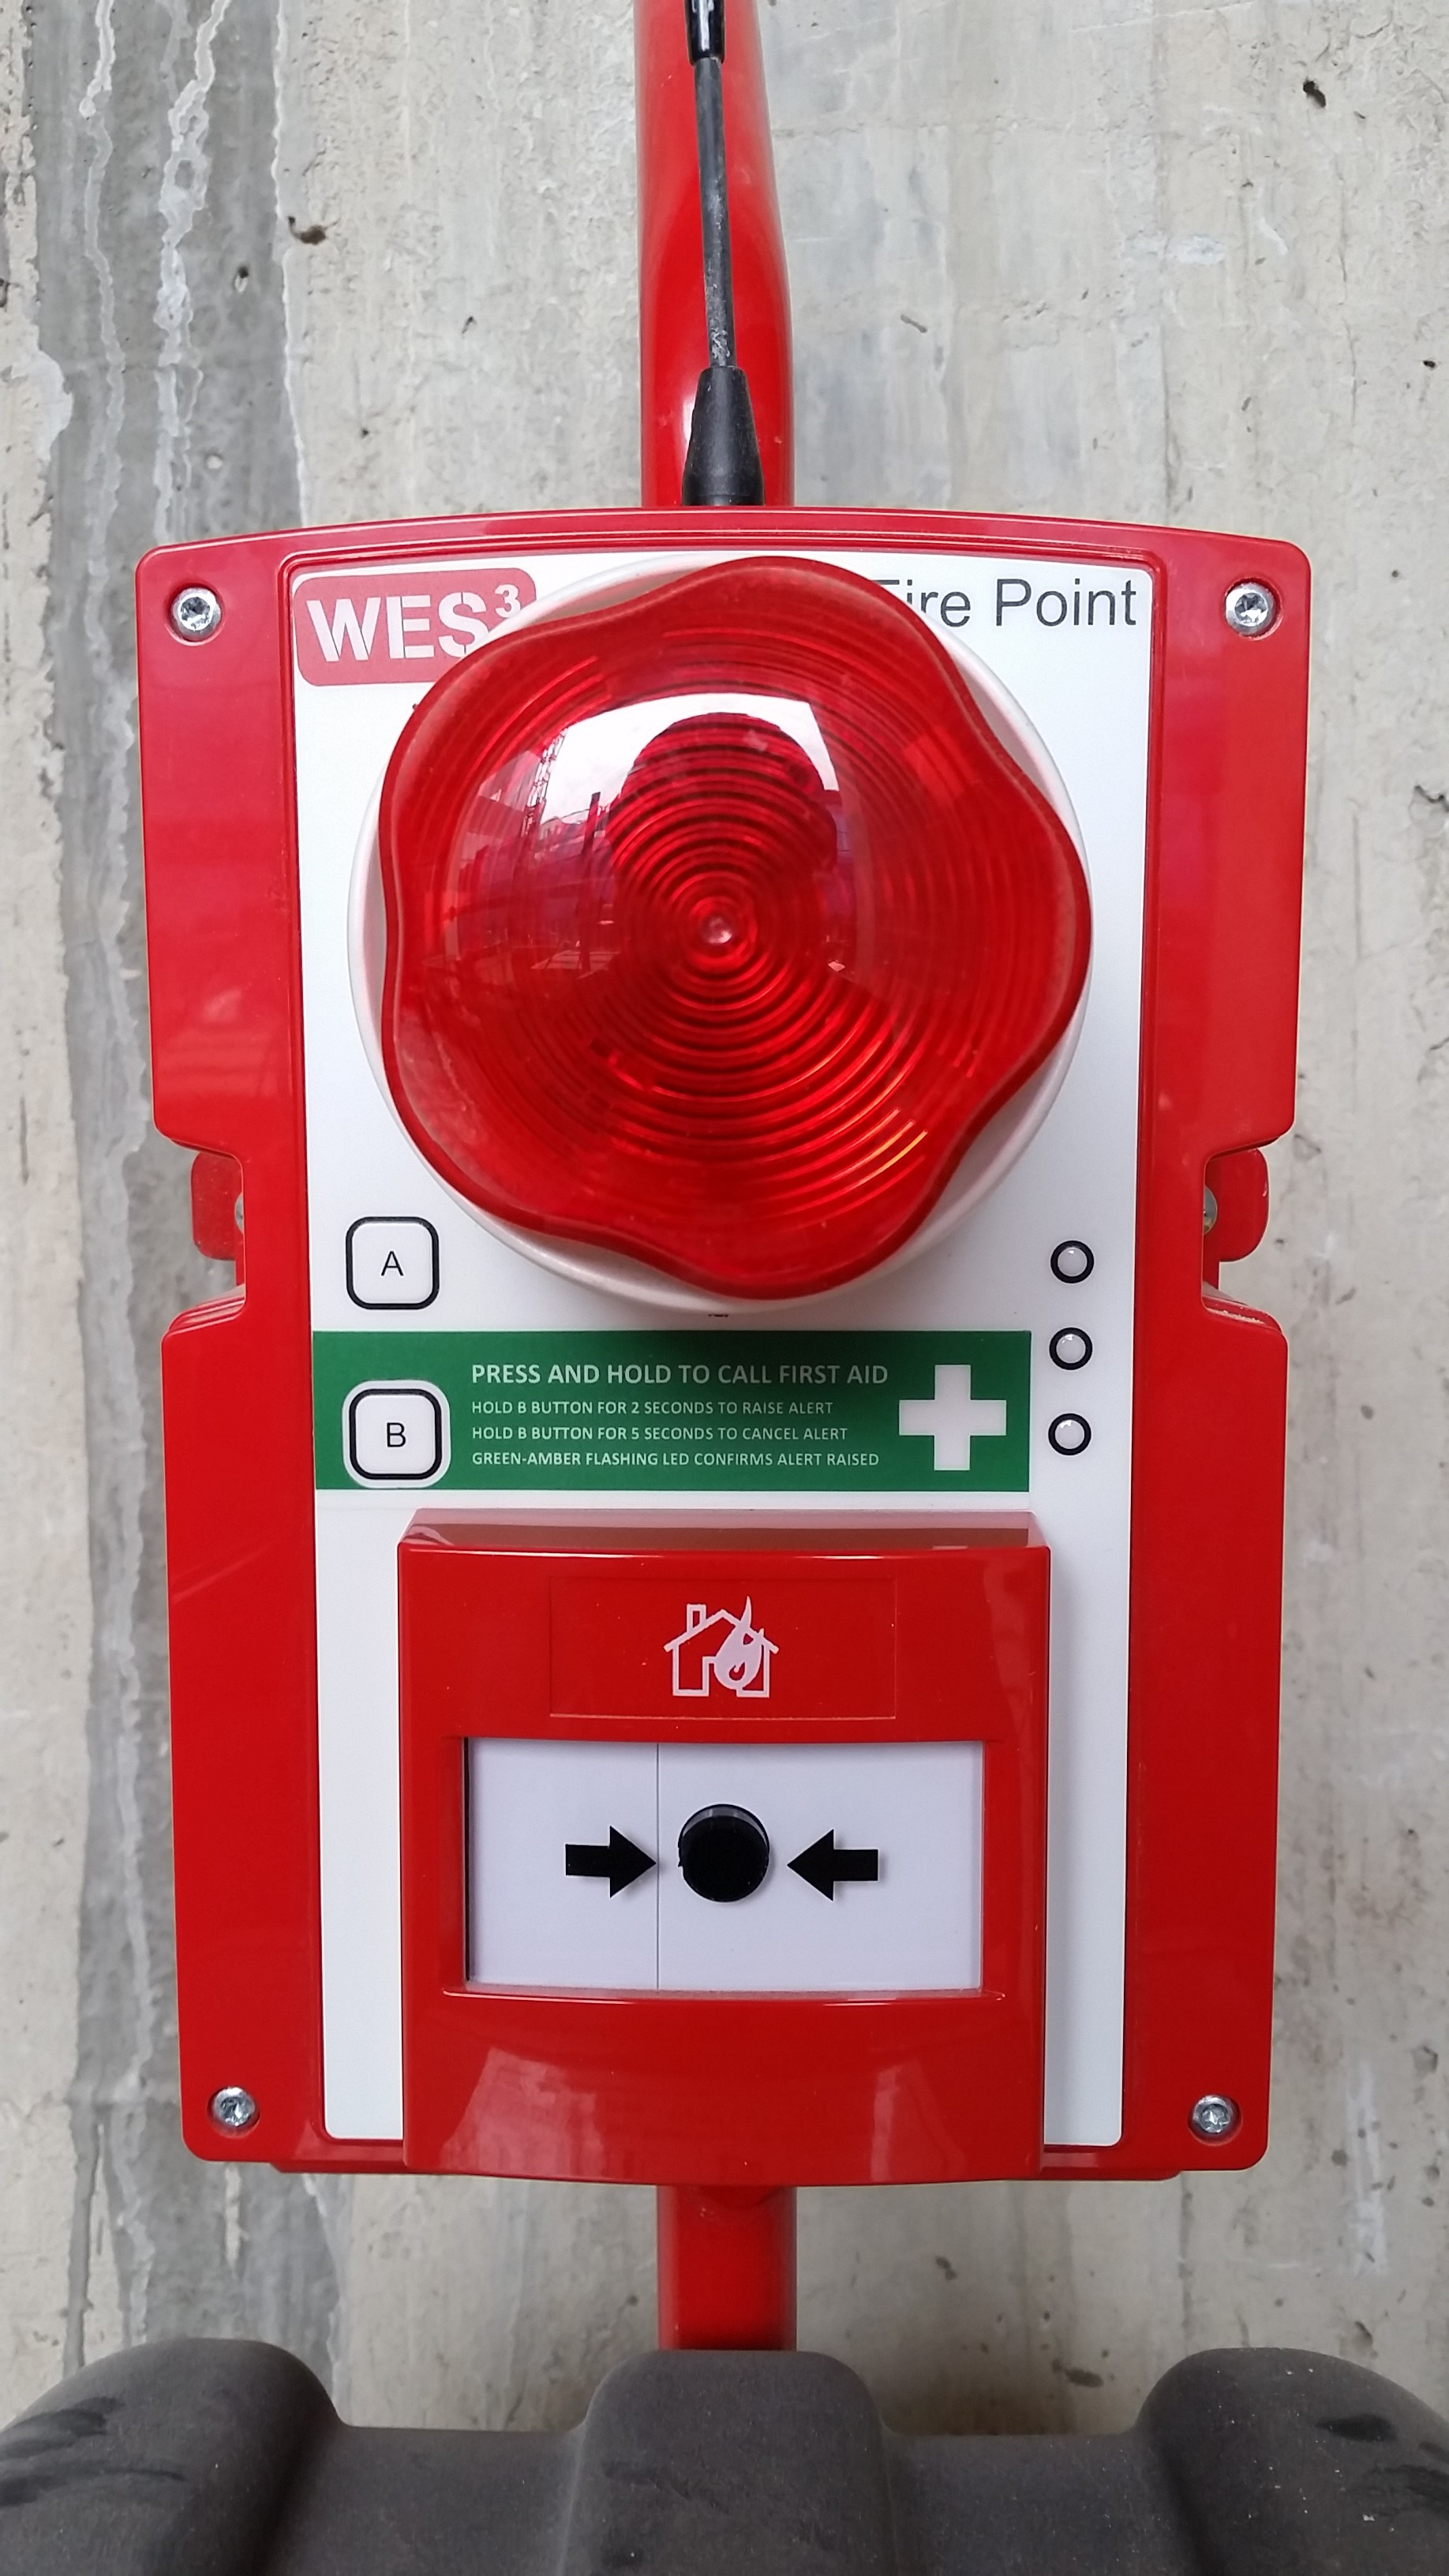 Site First Aid Call Points Added To Fire Alarm System Best Practice Hub